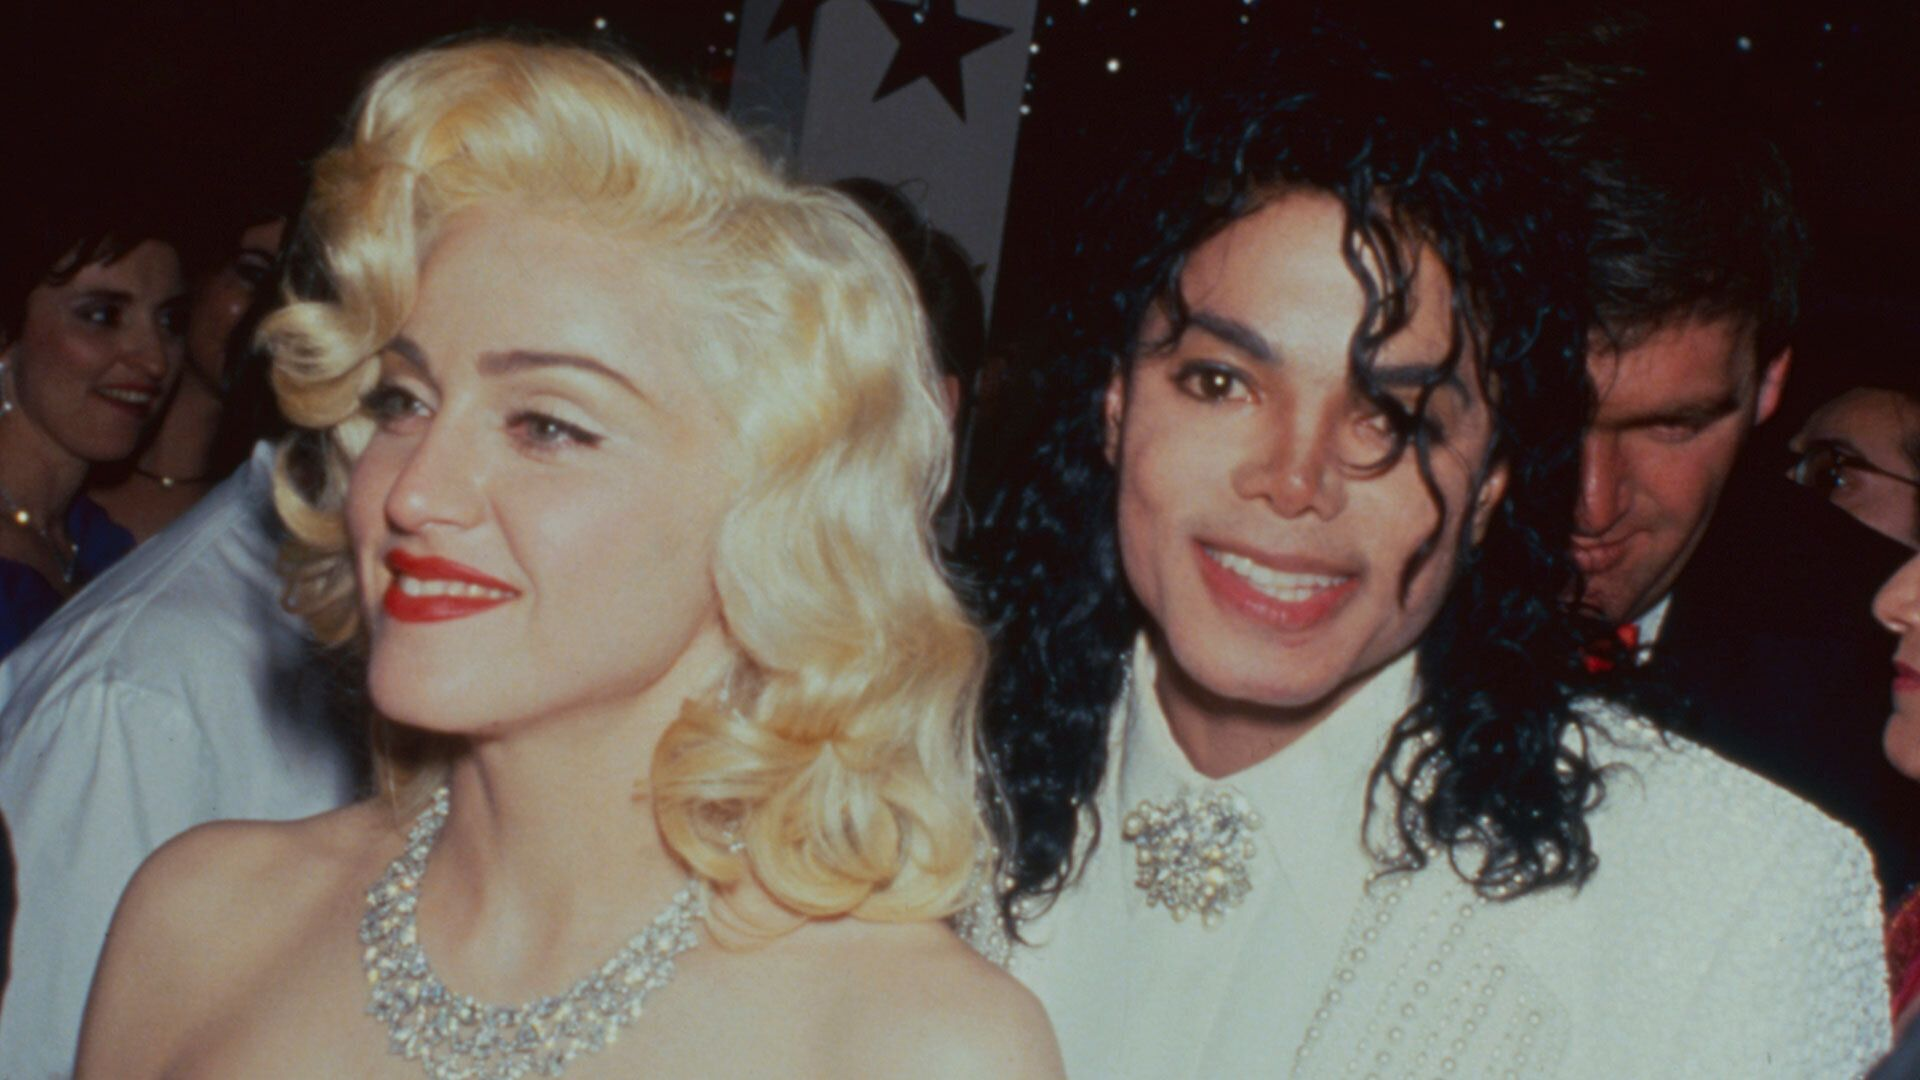 Singers Madonna and Michael Jackson at the Academy Awards. (Photo by Time Life Pictures/DMI/The LIFE Picture Collection/Getty Images)